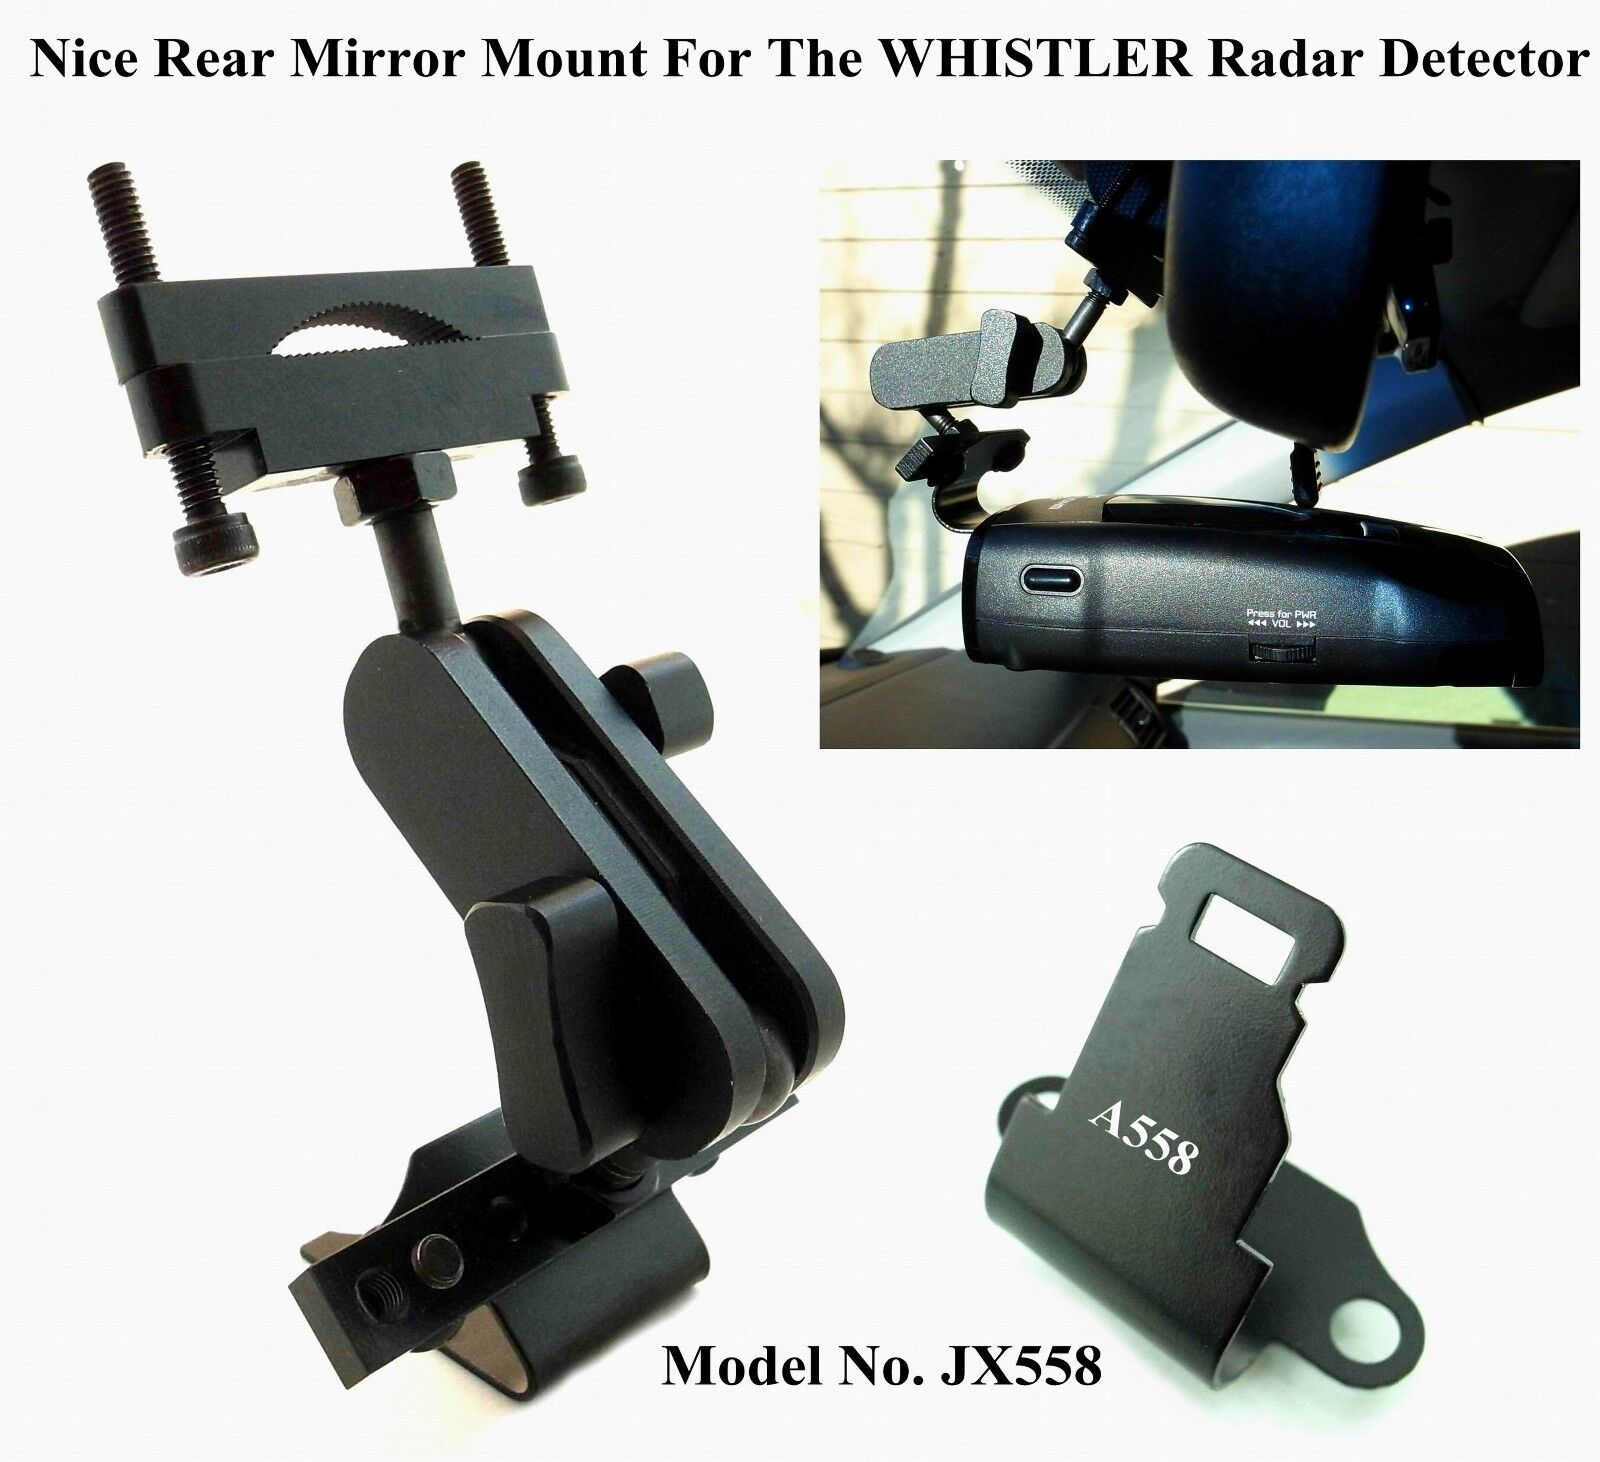 Nice Car Mount For The Whistler Radar Detector All Recent...